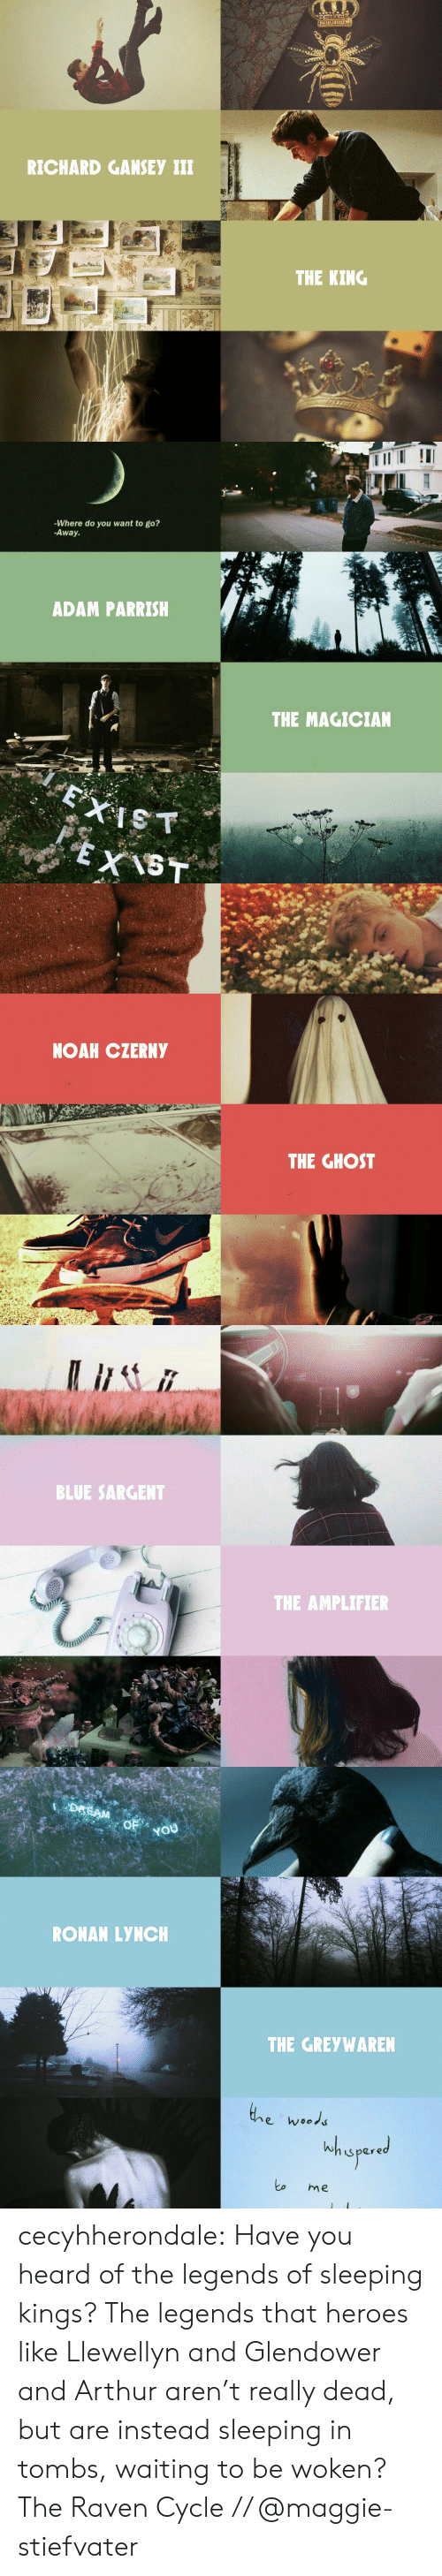 Arthur, Target, and Tumblr: RICHARD GANSEY iI  THE KING   -Where do you want to go?  -Away.  ADAM PARRISH  THE MAGICIAN   NOAH CZERNY  THE GHOST   BLUE SARGENT  THE AMPLIFIER   DREAM  OF  RONAN LYNCH  THE GREYWAREN  e wood  s pere  to me cecyhherondale:  Have you heard of the legends of sleeping kings? The legends that heroes like Llewellyn and Glendower and Arthur aren't really dead, but are instead sleeping in tombs, waiting to be woken?  The Raven Cycle // @maggie-stiefvater